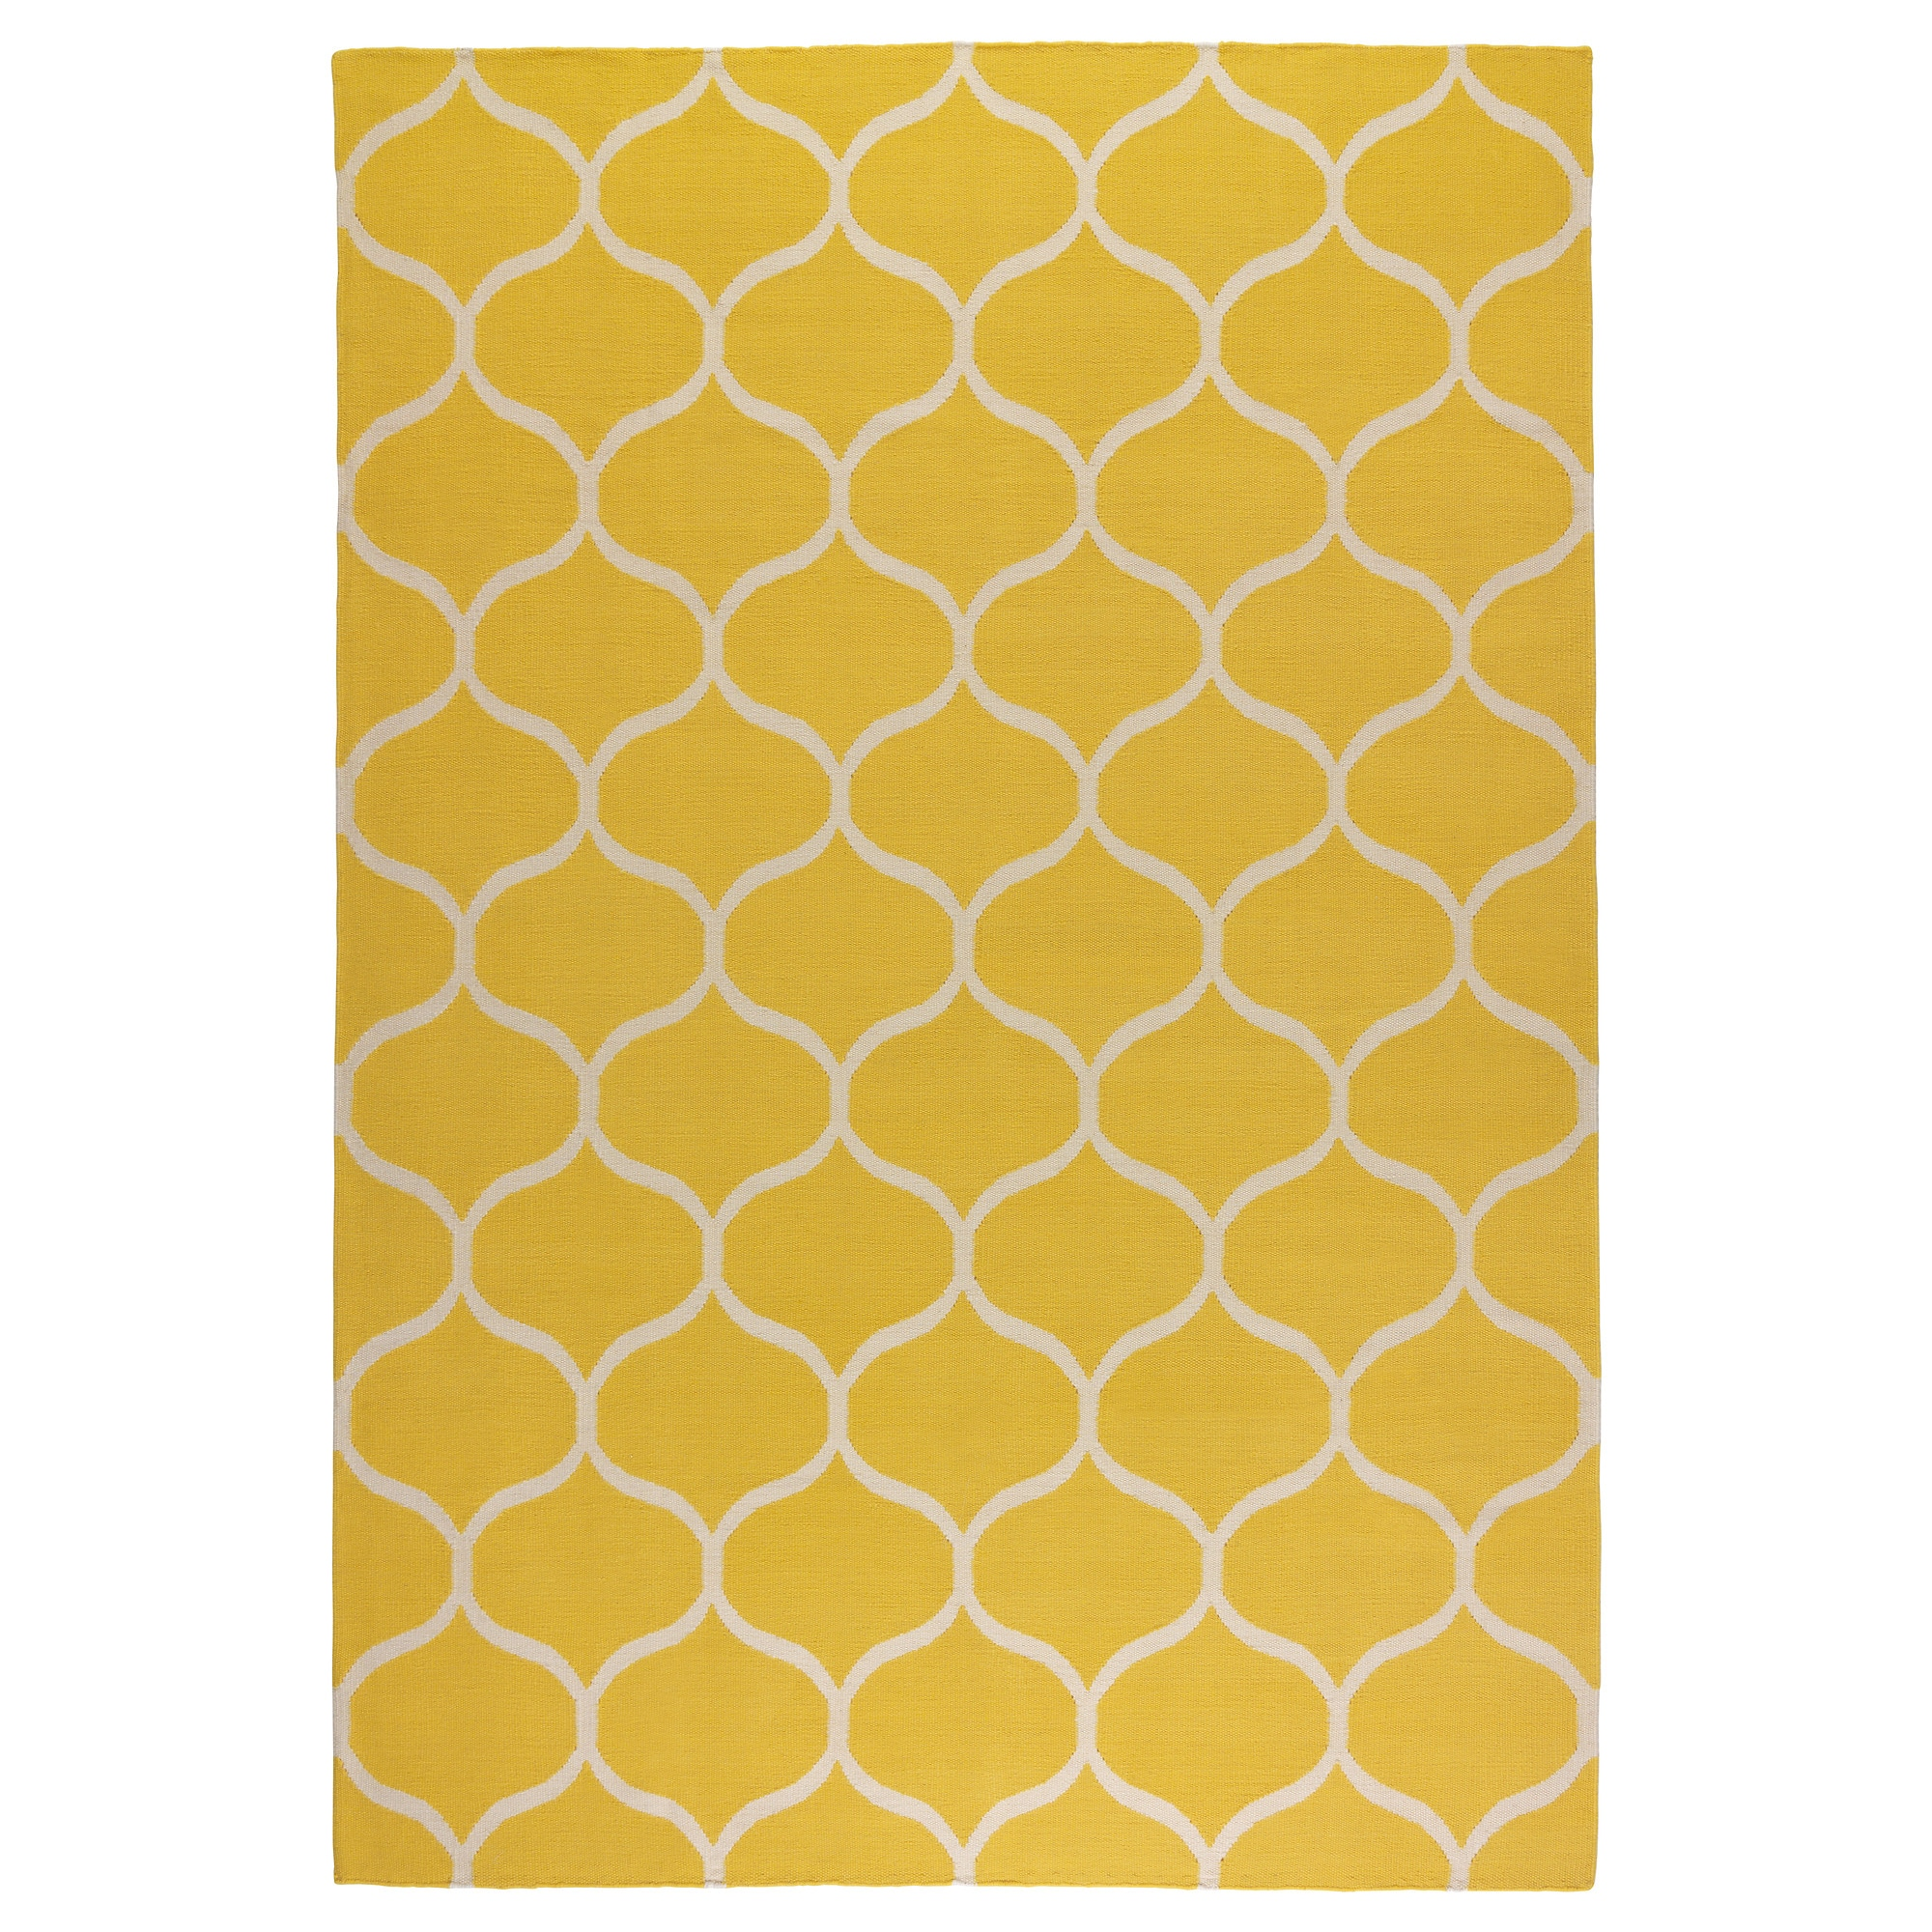 STOCKHOLM rug, flatwoven, net pattern handmade, net pattern yellow yellow  Length: 7